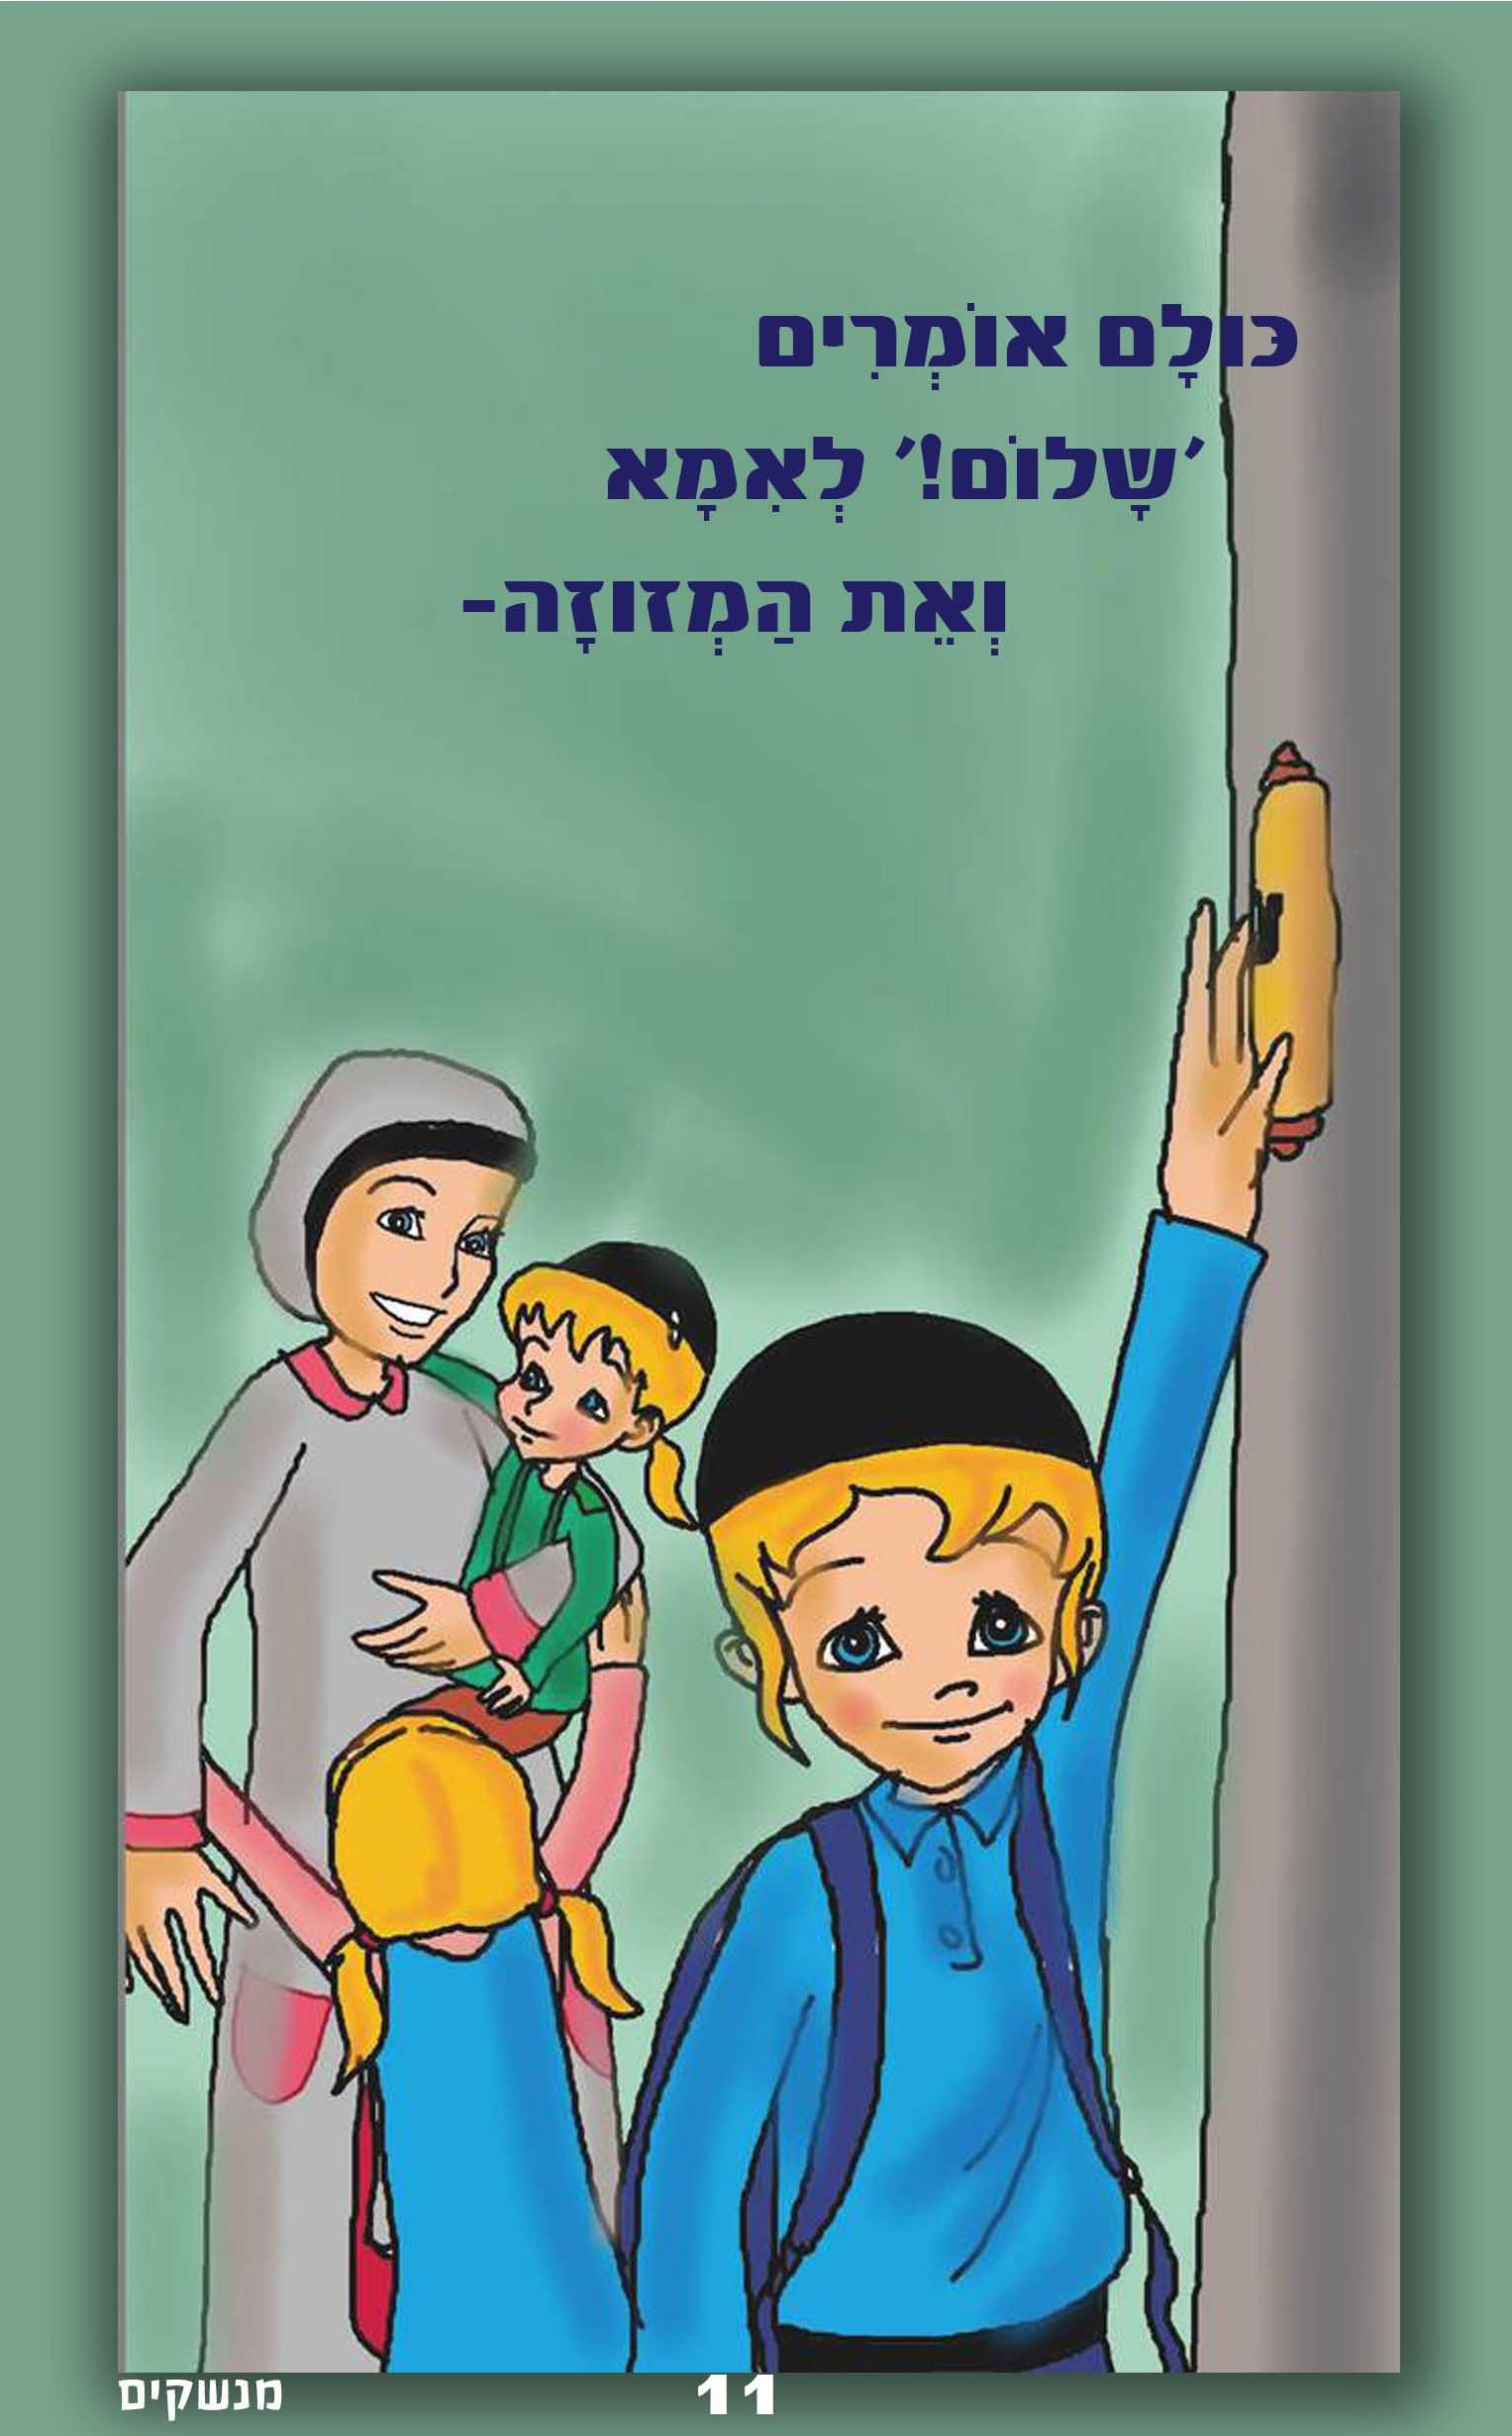 בוקר טוב לטוביה by t - Illustrated by חיה - Ourboox.com